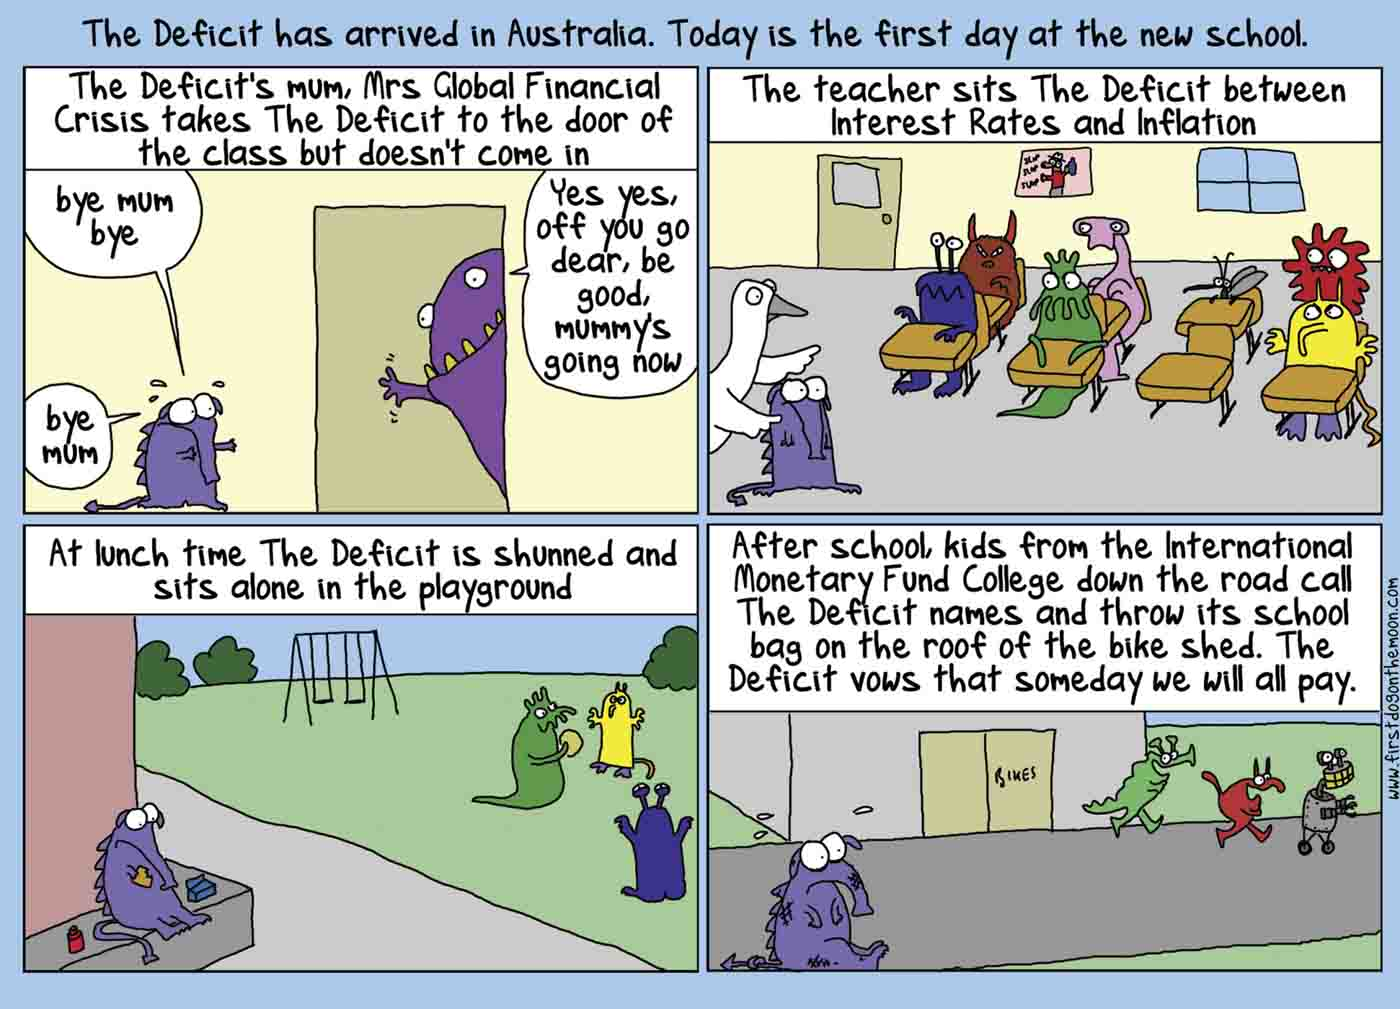 A colour strip cartoon set at a school and labelled, 'The Deficit has arrived in Australia. Today is the first day at the new school'. In the first frame, headed, 'The Deficit's mum, Mrs Global Financial Crisis' takes The Deficit to the door of the class but doesn't come in,' a small purple monster says, 'Bye Mum, bye', as his purple monster mother peers around a doorway and says, 'Yes yes, off you go dear, be good, Mummy's going now'. In the second frame a goose leads the monster child to a spare desk, among other monsters, under the heading, 'The teacher sits The Deficit between Interest Rates and Inflation'. In the third frame the monster child sits off to one side while the other monster children play, under the heading, 'At lunch time The Deficit is shunned and sits alone in the playground'. The final frame shows another group of monster kids running away from the crying monster child, under the heading, 'After school, kids from the International Monetary Fund College down the road call The Deficit names and throw its school bag on the roof of the bike shed. The Deficit vows that someday we will all pay'. - click to view larger image